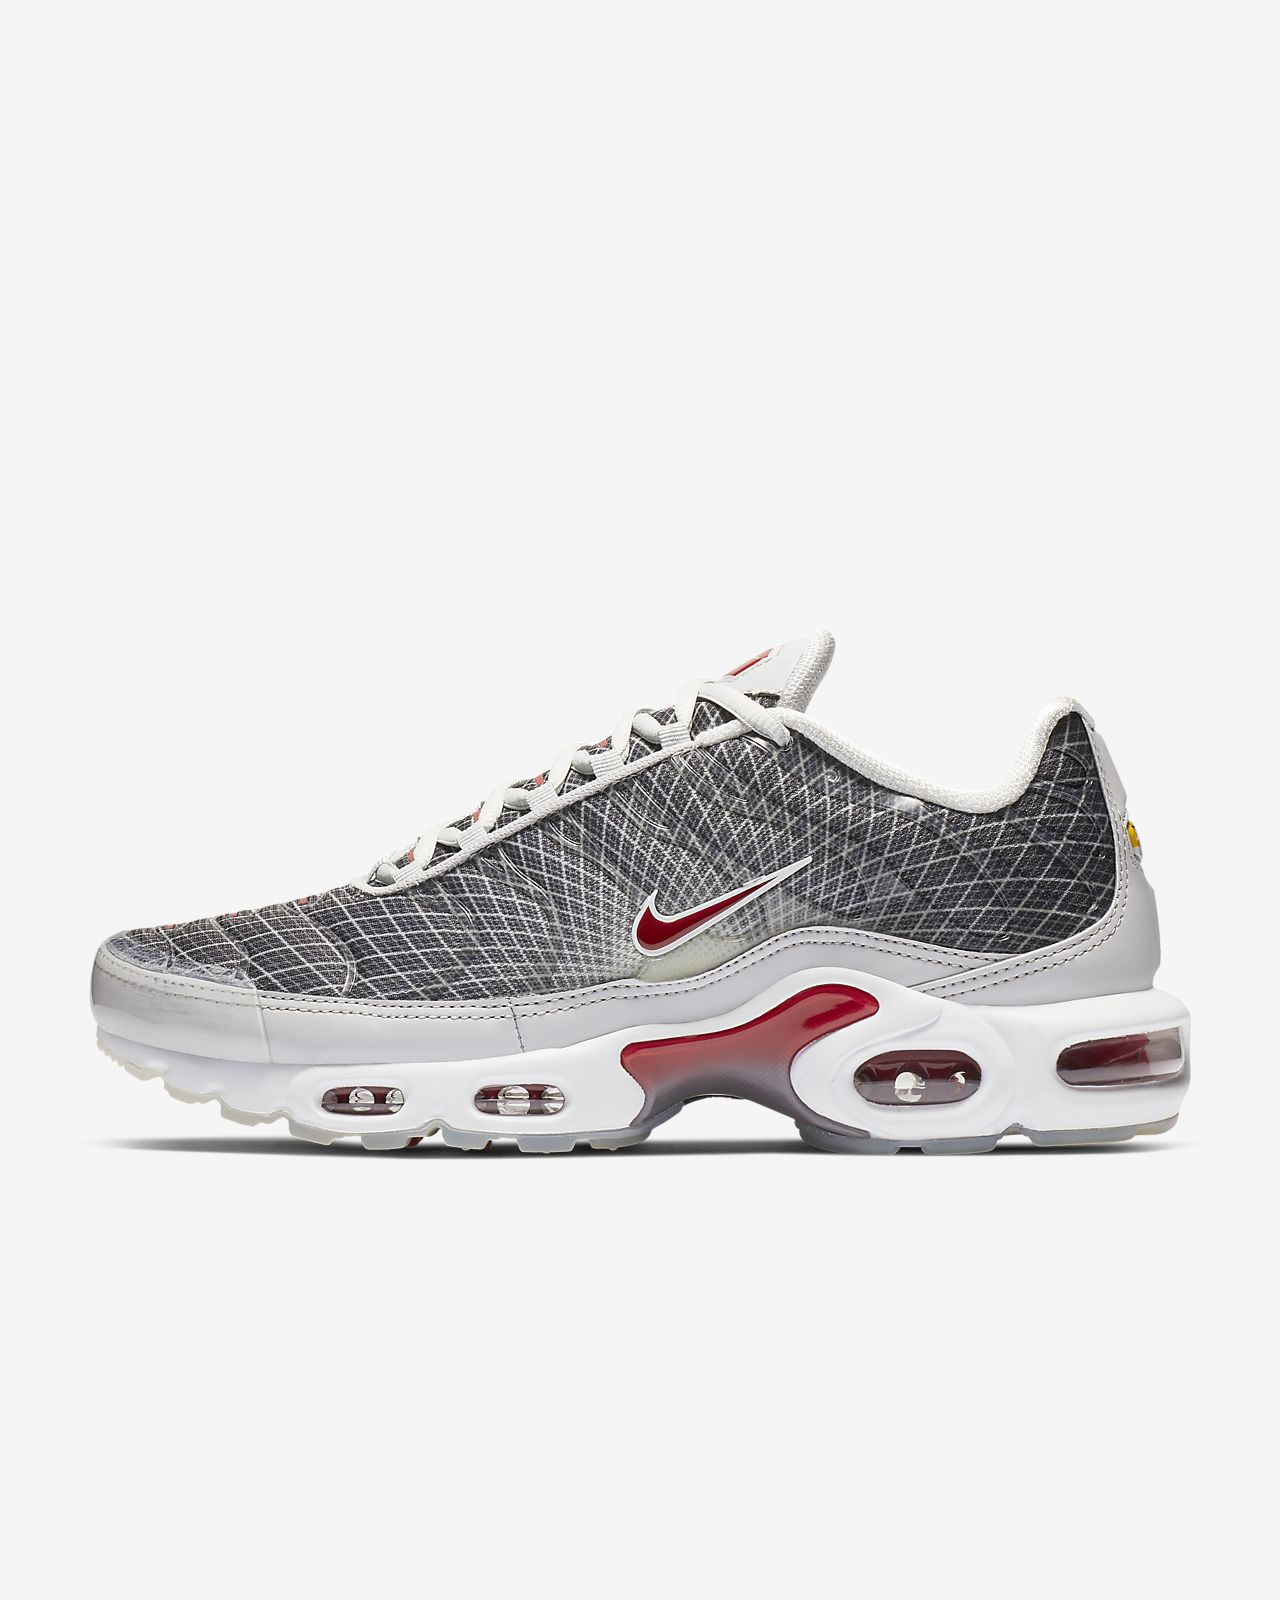 promo code 0c8c0 4e0c8 Nike Air Max Plus OG Shoe